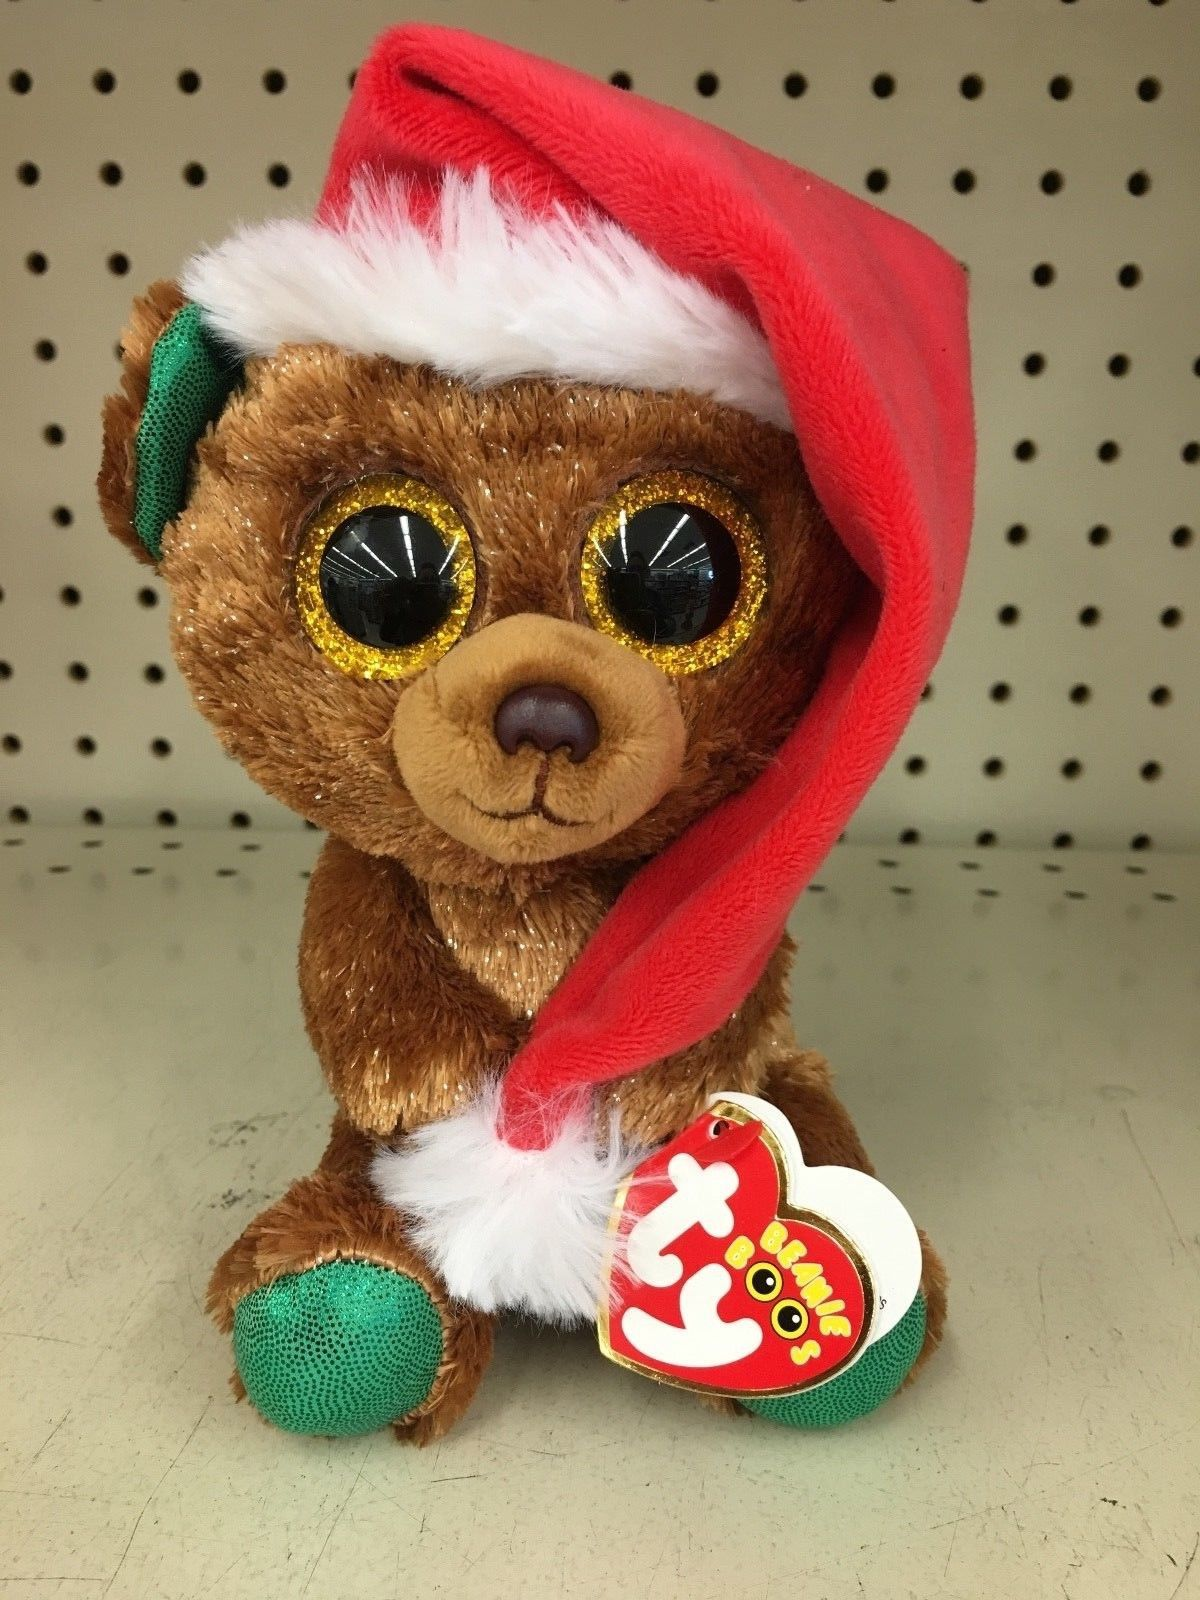 44c722e82d9 Ty 19203  Ty Beanie Boo Nicholas The Christmas Bear 6 Mwmt-In Hand In Us!  -  BUY IT NOW ONLY   11.99 on  eBay  beanie  nicholas  christmas